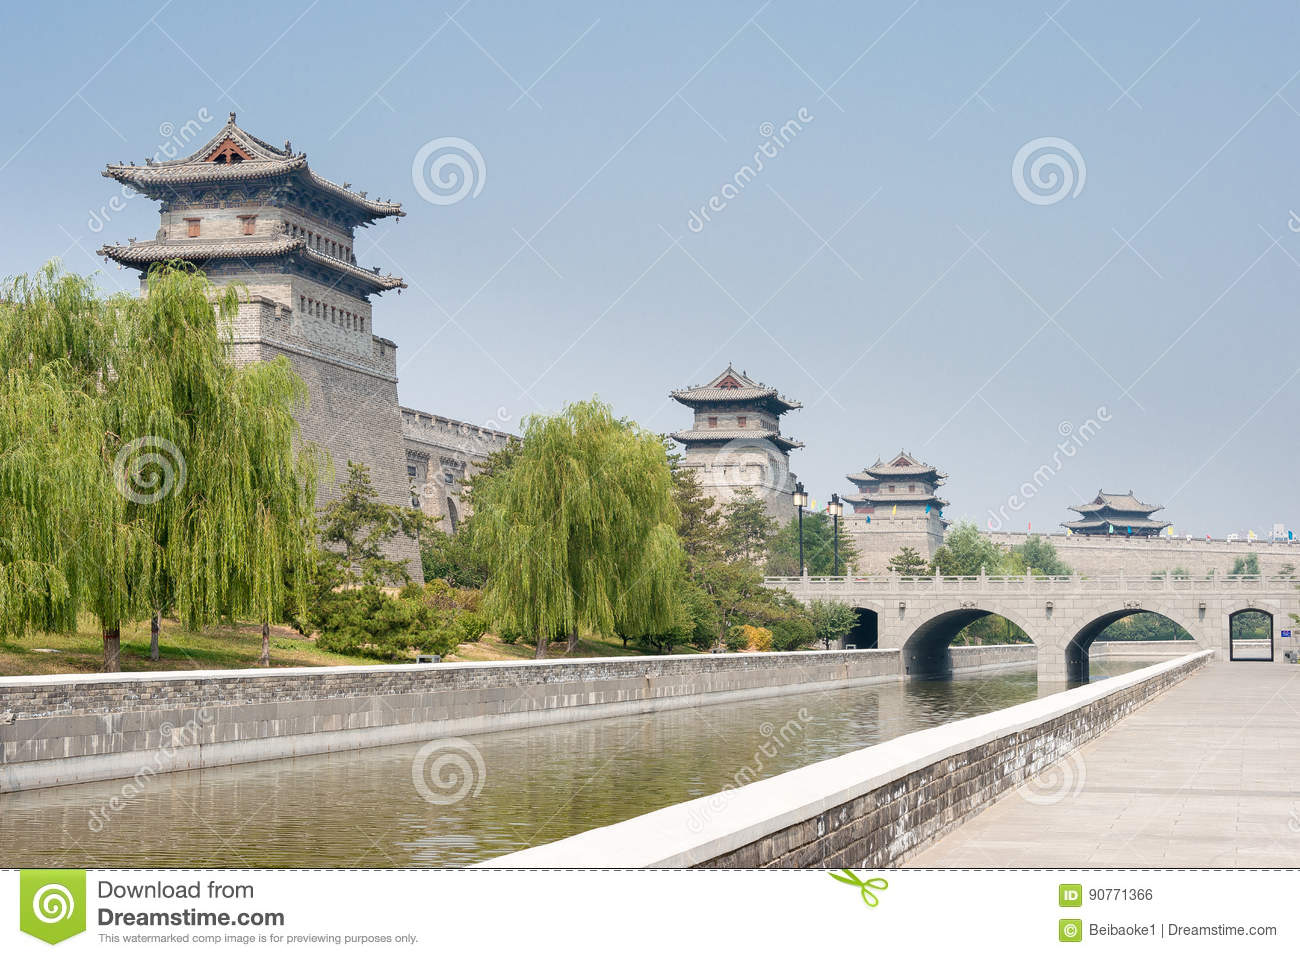 SHANXI, CHINA - Sept 21 2015: Datong City Wall. a famous histor